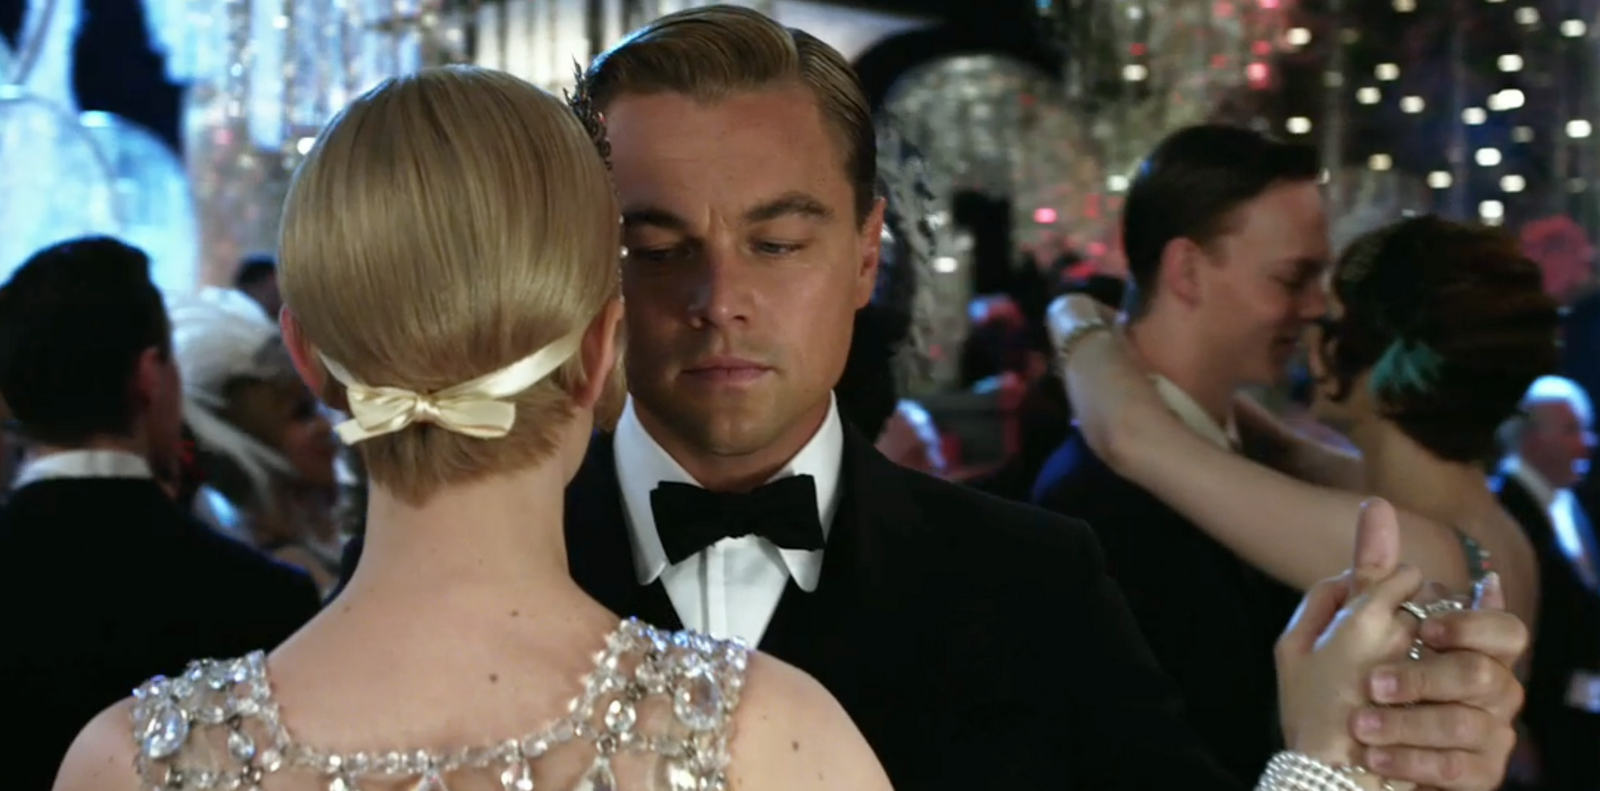 illusions within the great gatsby The use of illusion within the characters of daisy, gatsby, and tom in the great gatsby is used effectively to portray the false nature of people in the 1920's and.